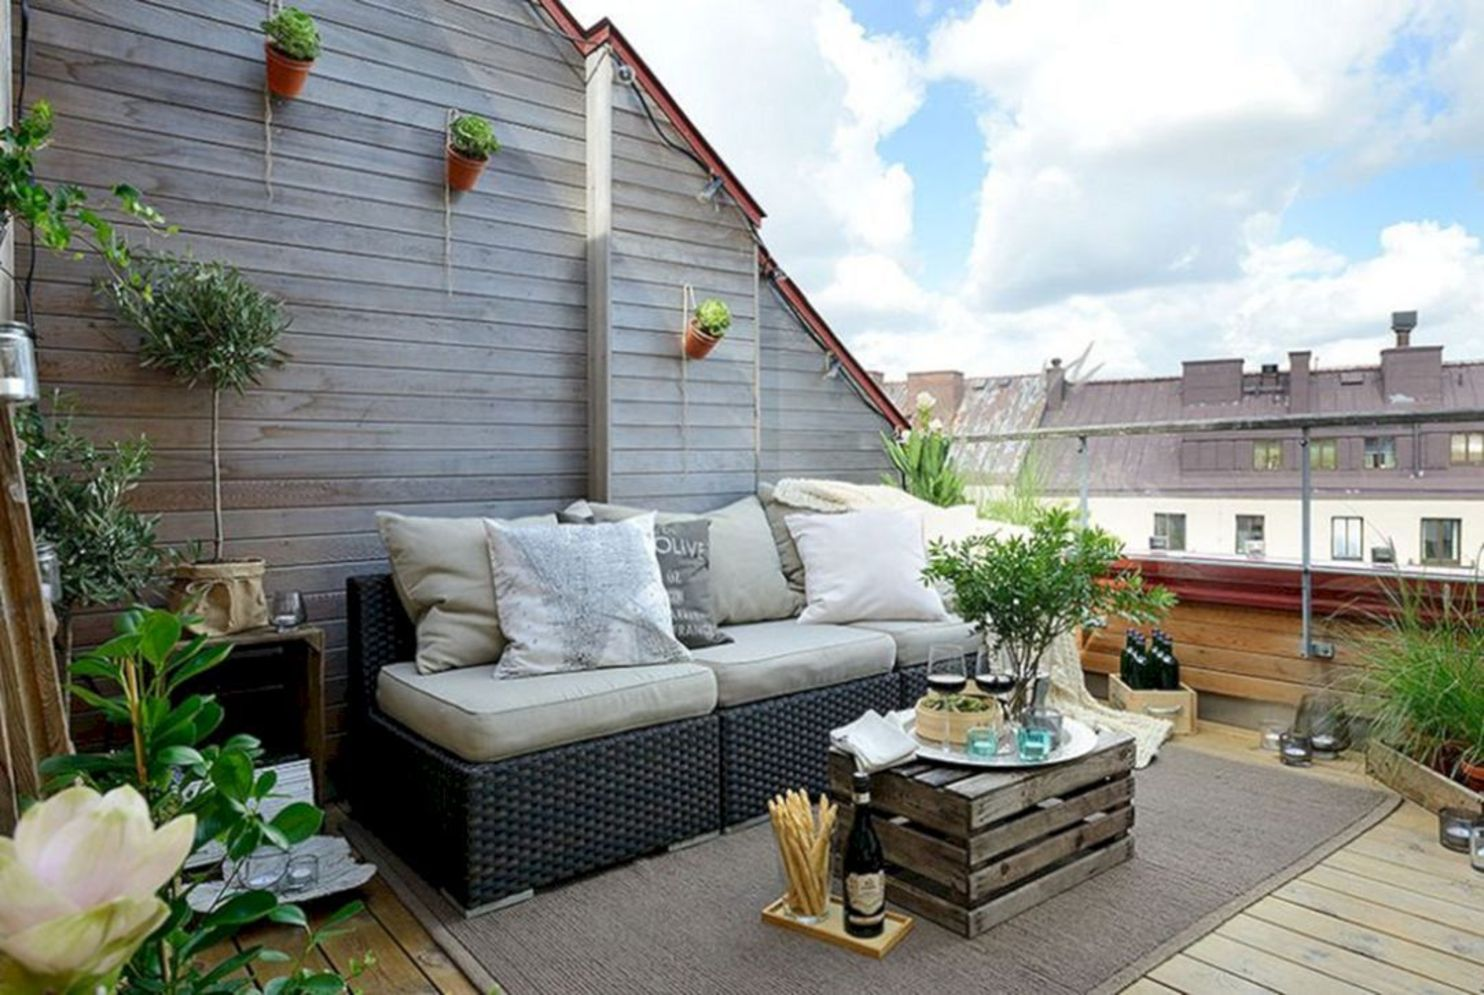 Clever apartment balcony conversion maximizing small space into functional living area Image 37